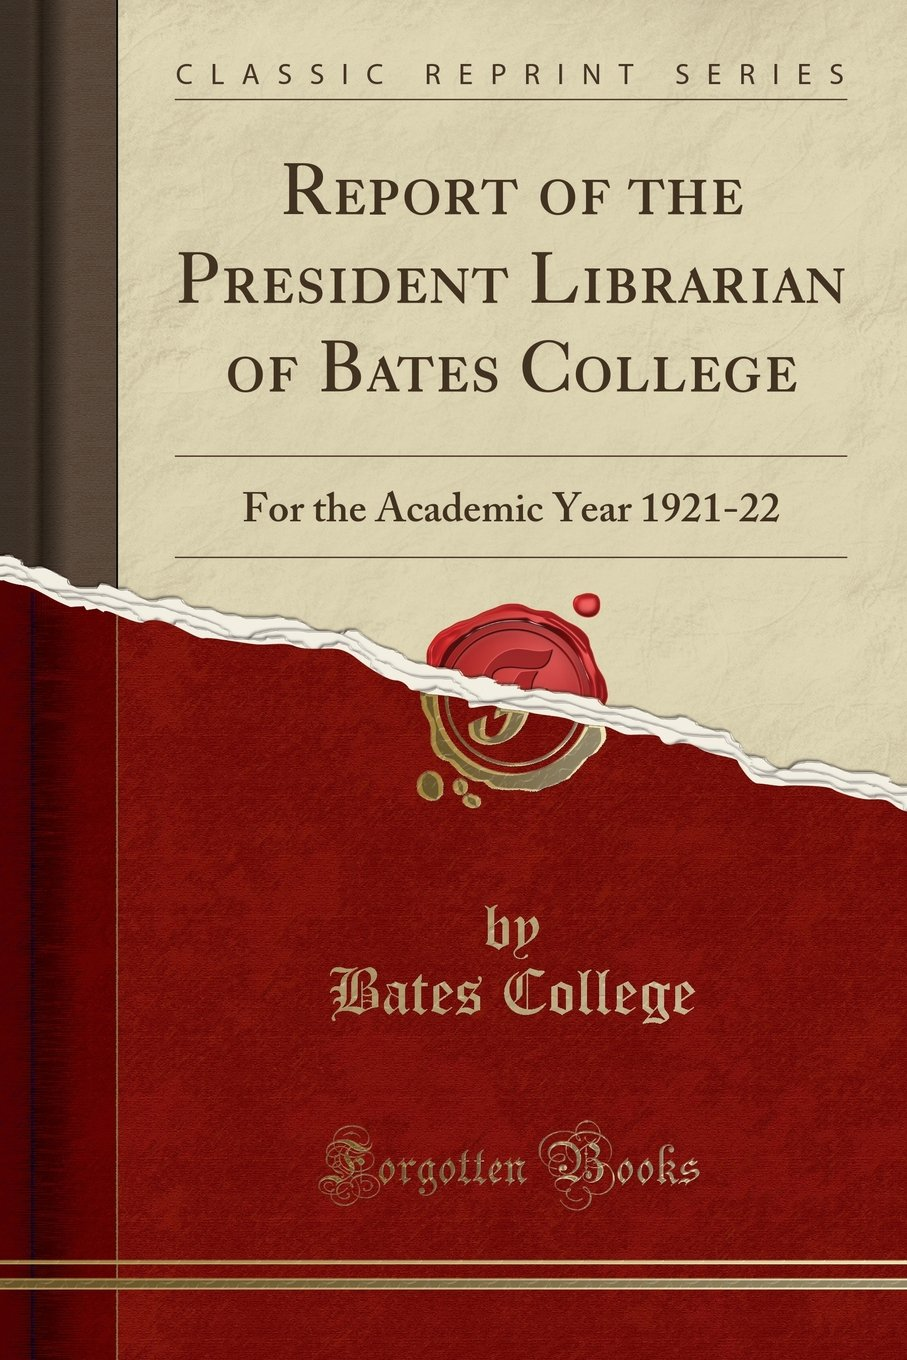 Download Report of the President Librarian of Bates College: For the Academic Year 1921-22 (Classic Reprint) PDF